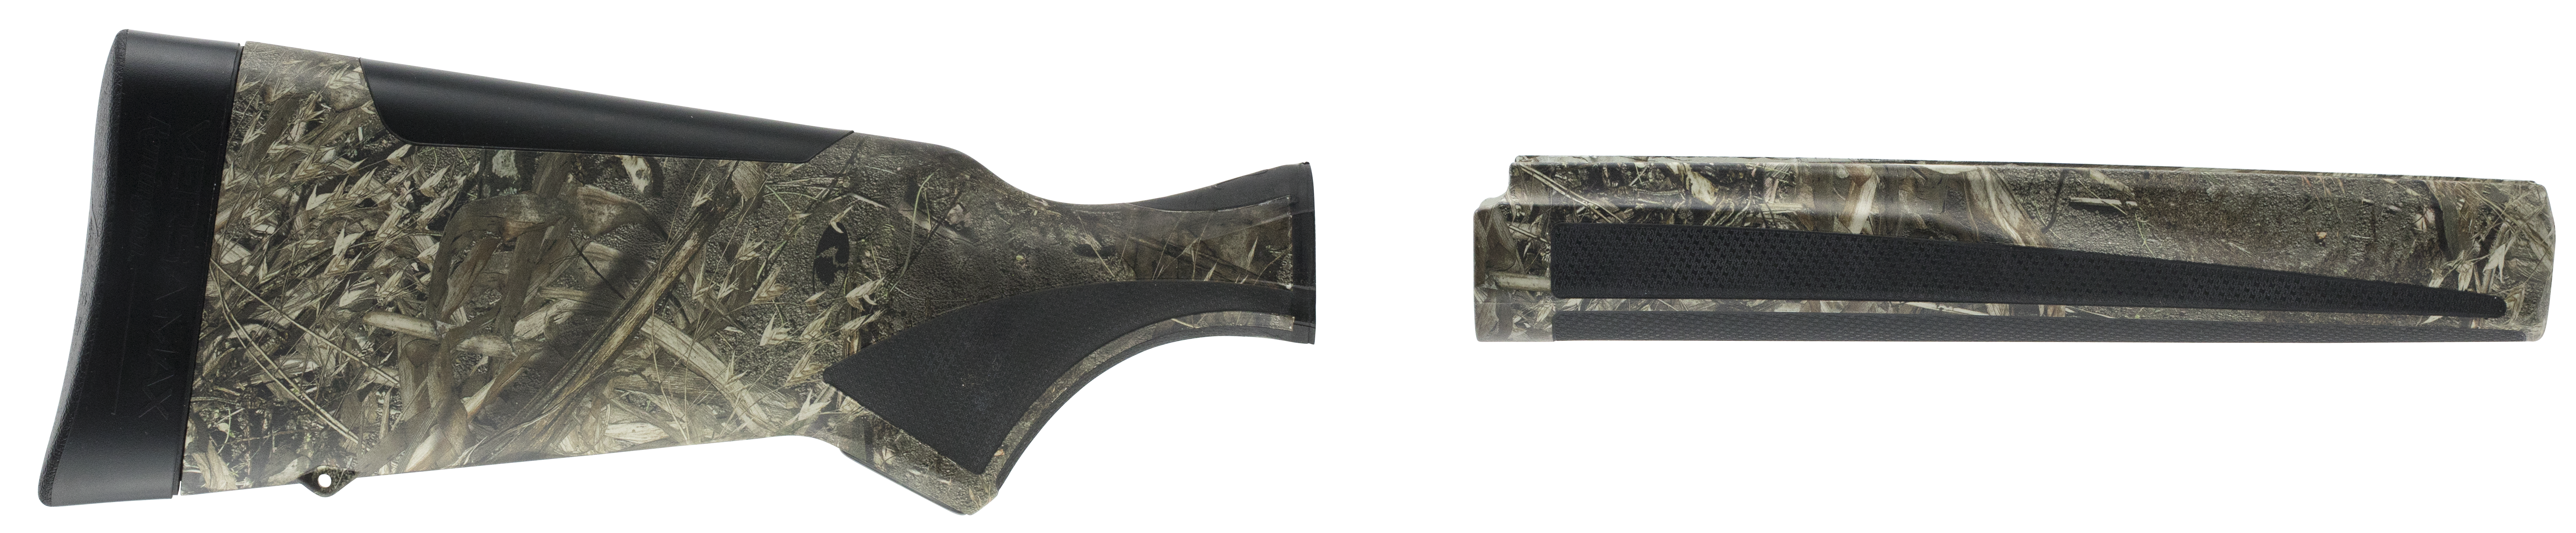 Remington Versa Max 12 GA Shotgun Stock/Forend - Synthetic Mossy Oak Duck Blind